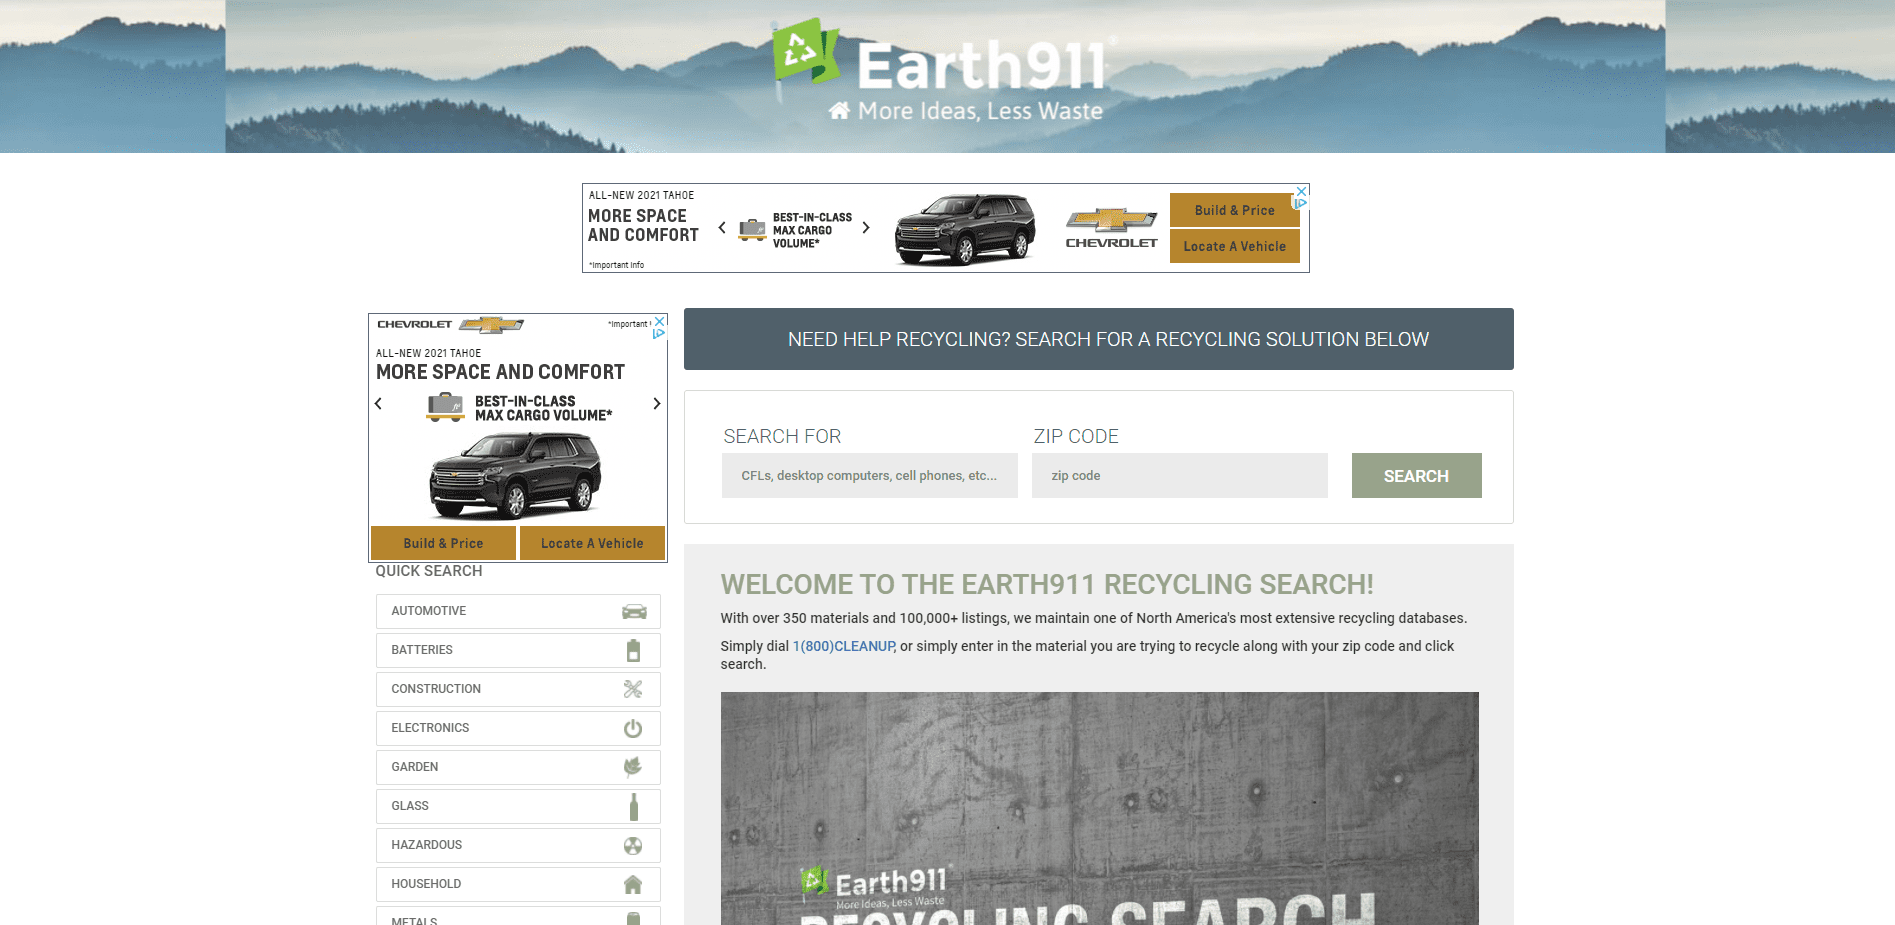 Earth 911 search ideas for a piece on how to dispose of old gas